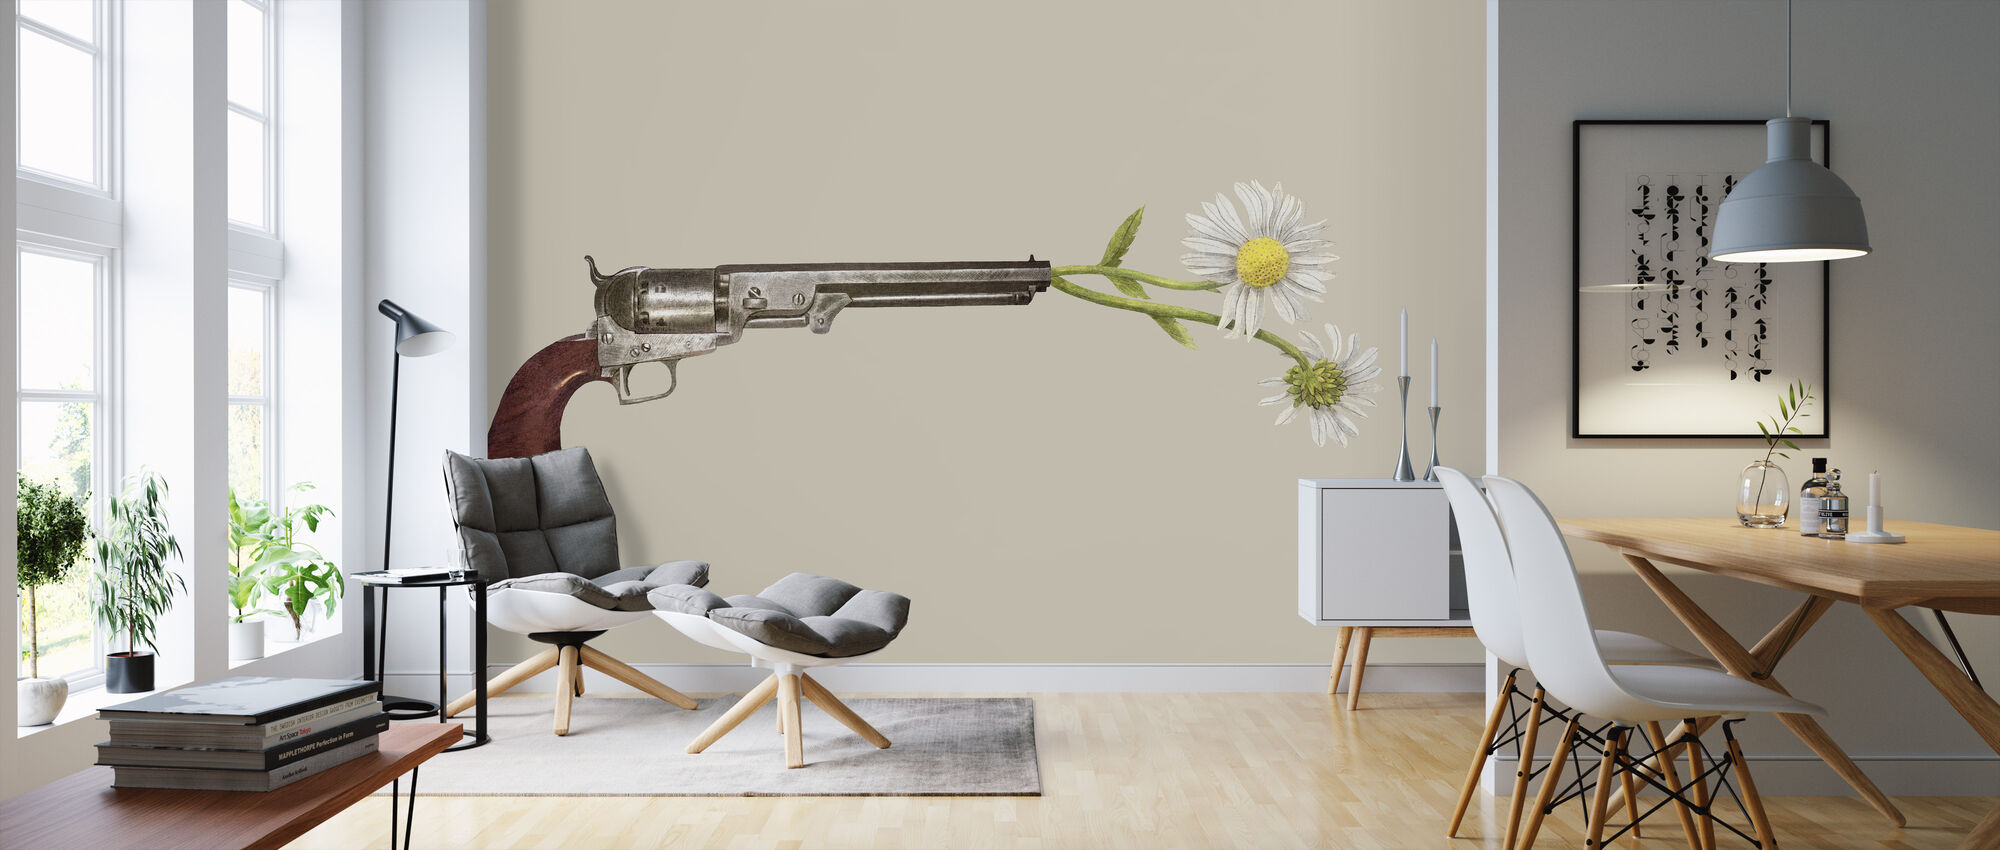 Peacemaker - Wallpaper - Living Room